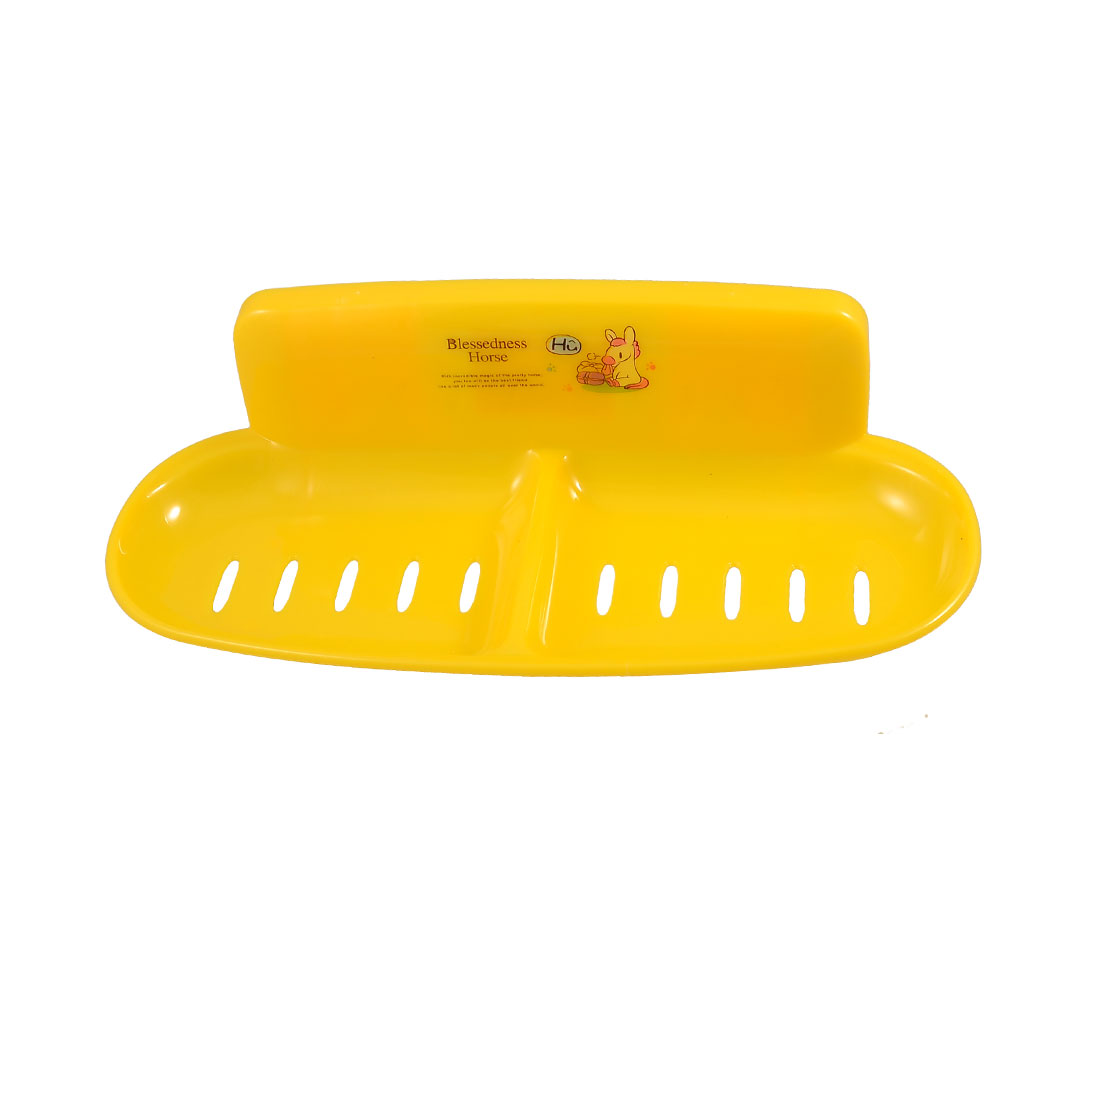 Yellow 2 Compartments Plastic Soap Dish Tray Holder w Suction Cups